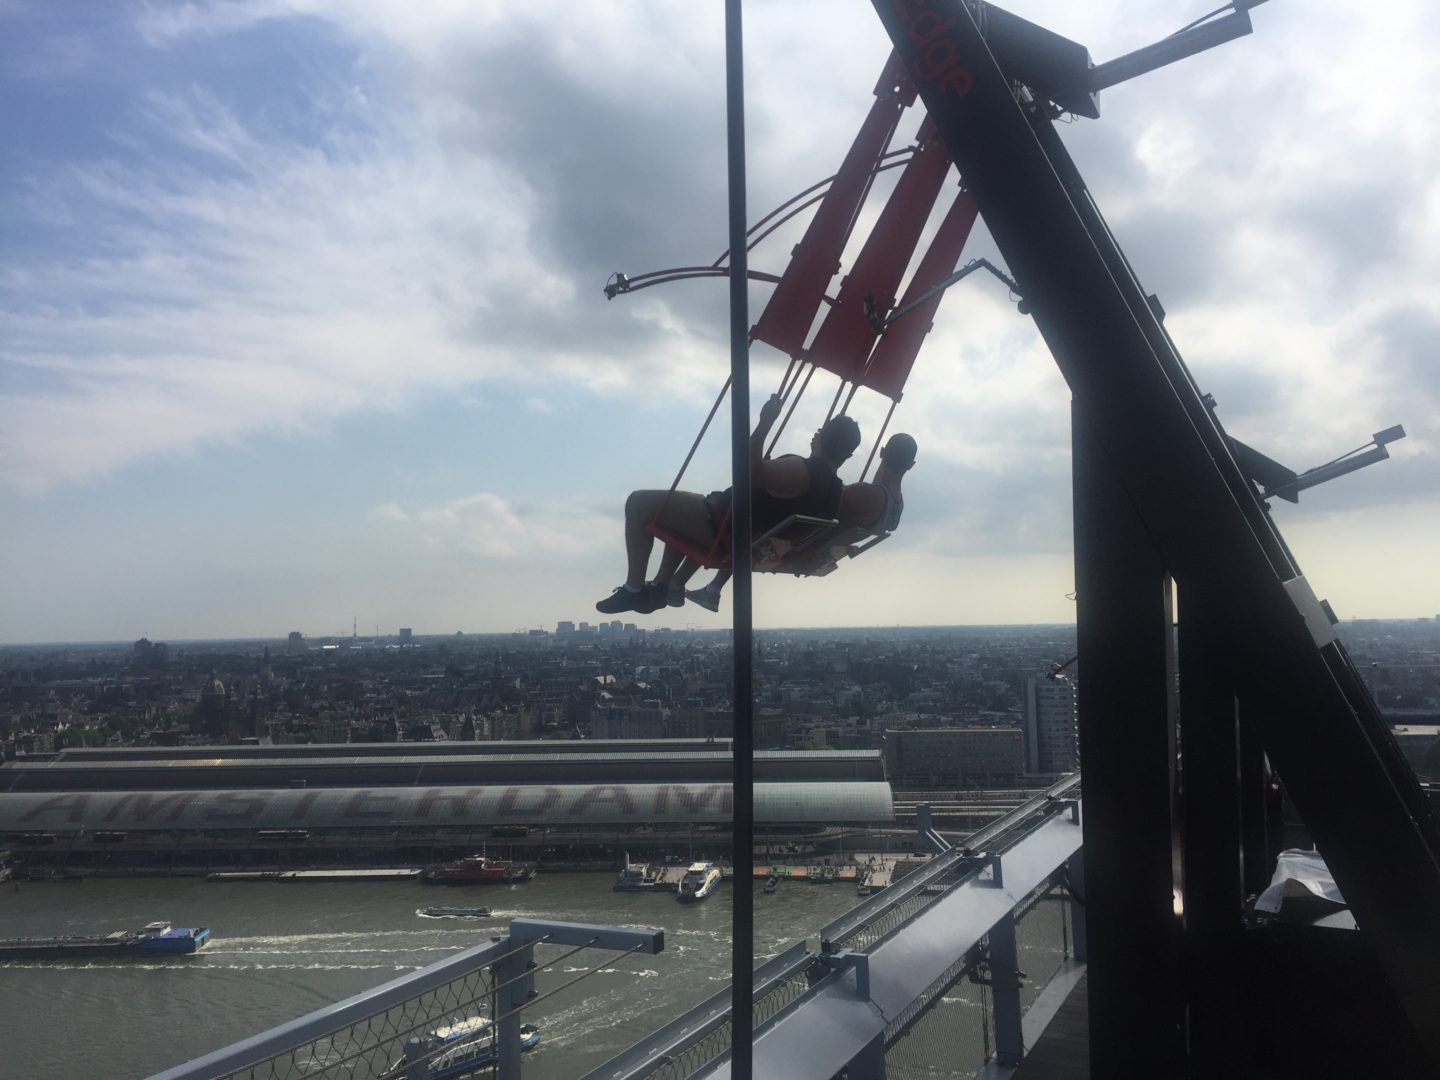 The swing at the top of the A'DAM tower